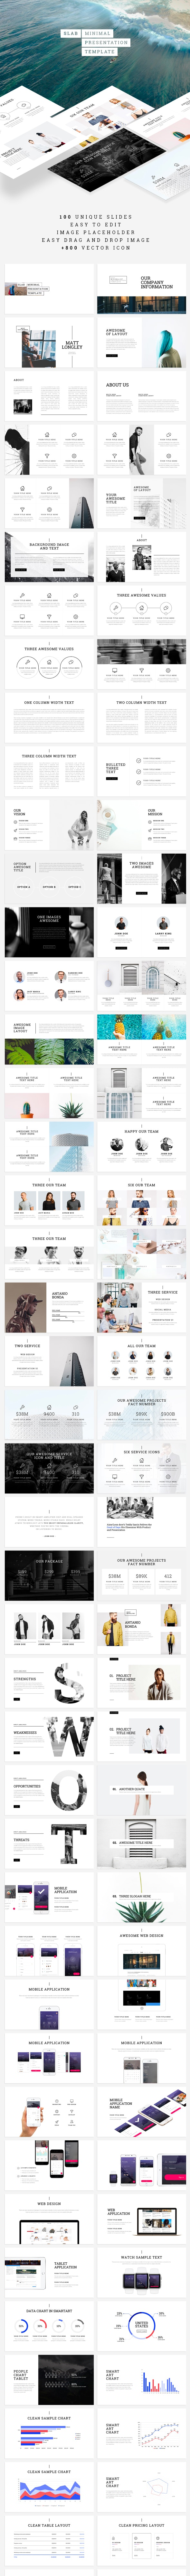 Slab Powerpoint Template - Business PowerPoint Templates